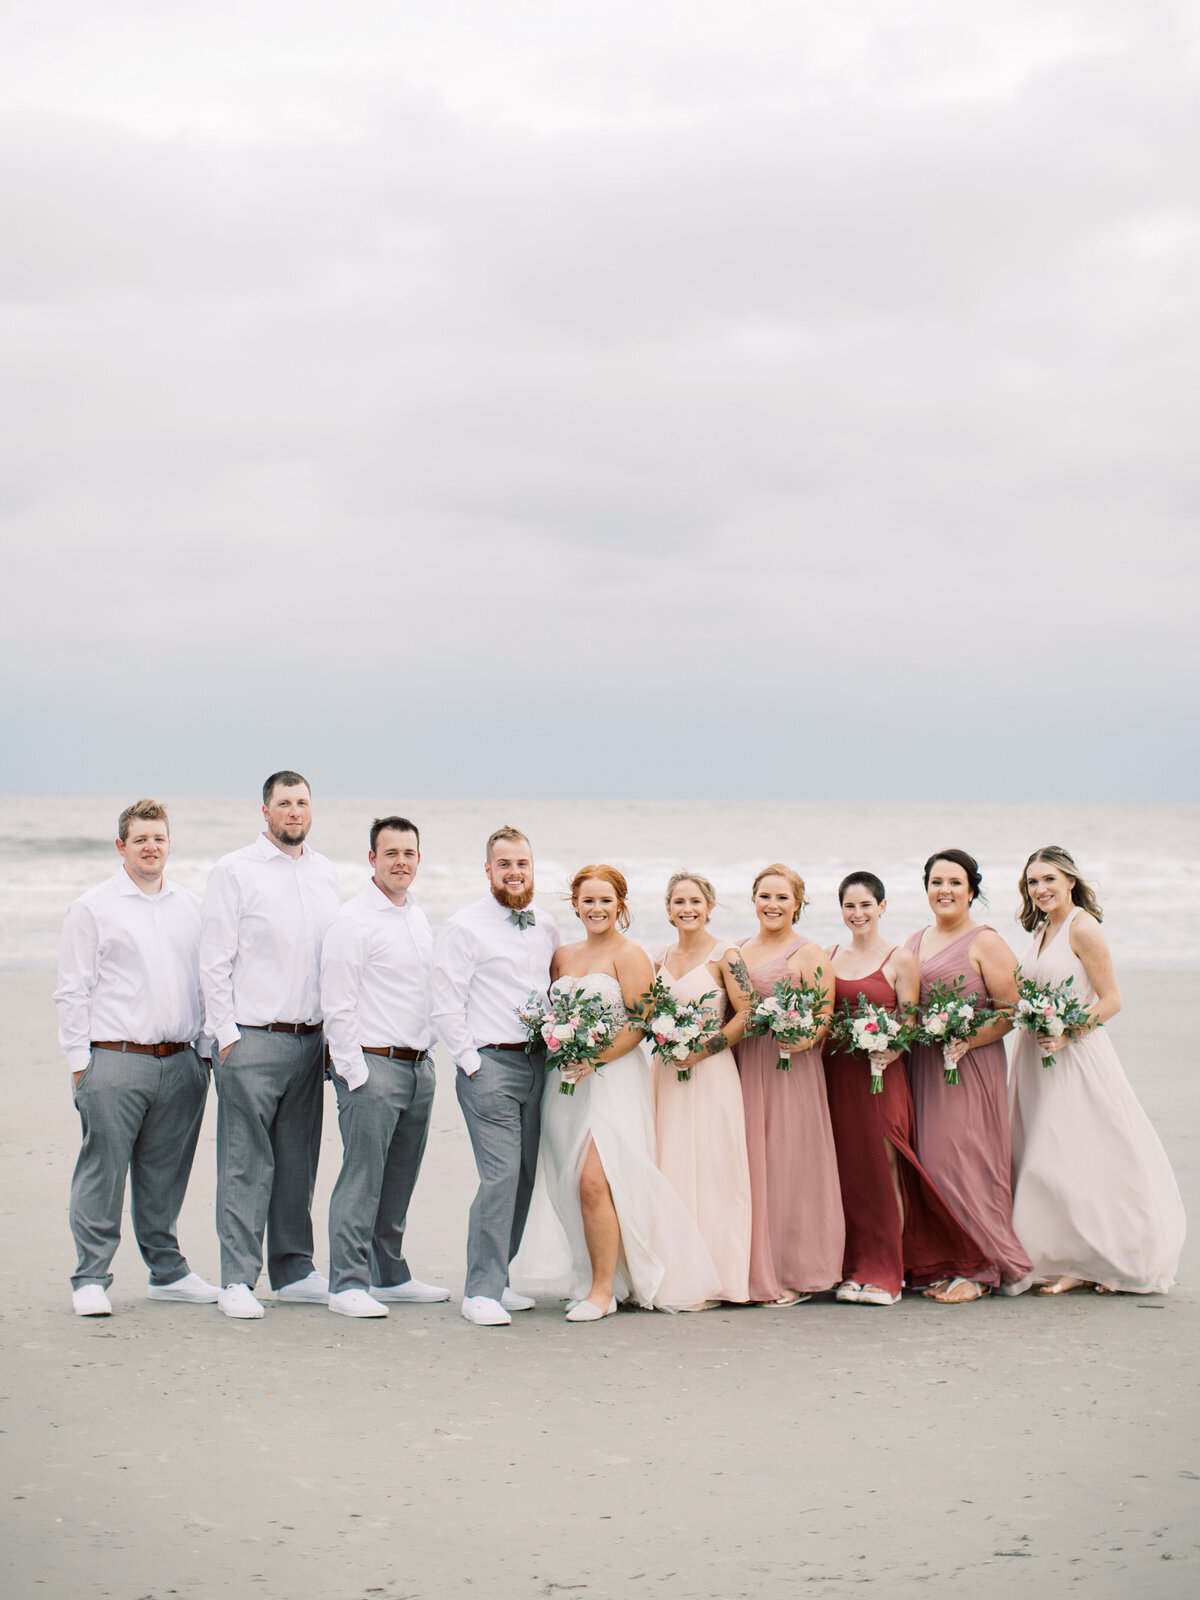 Charleston Wedding Photographer | Beaufort Wedding Photographer | Savannah Wedding Photographer | Santa Barbara Wedding Photographer | San Luis Obispo Wedding Photographer-21